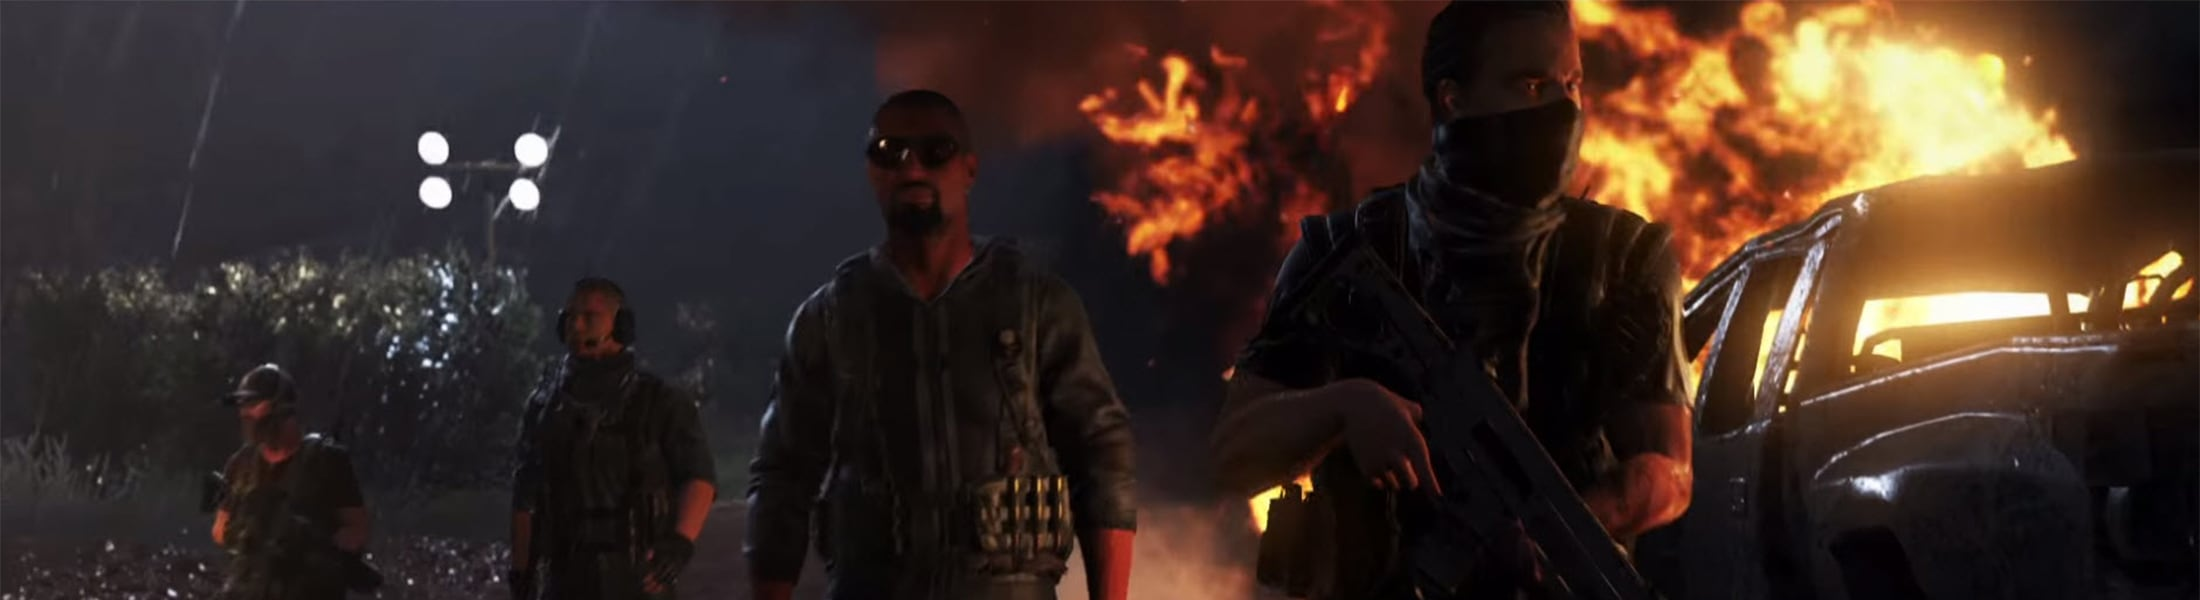 Get All The Details On The Different Editions Of Ghost Recon